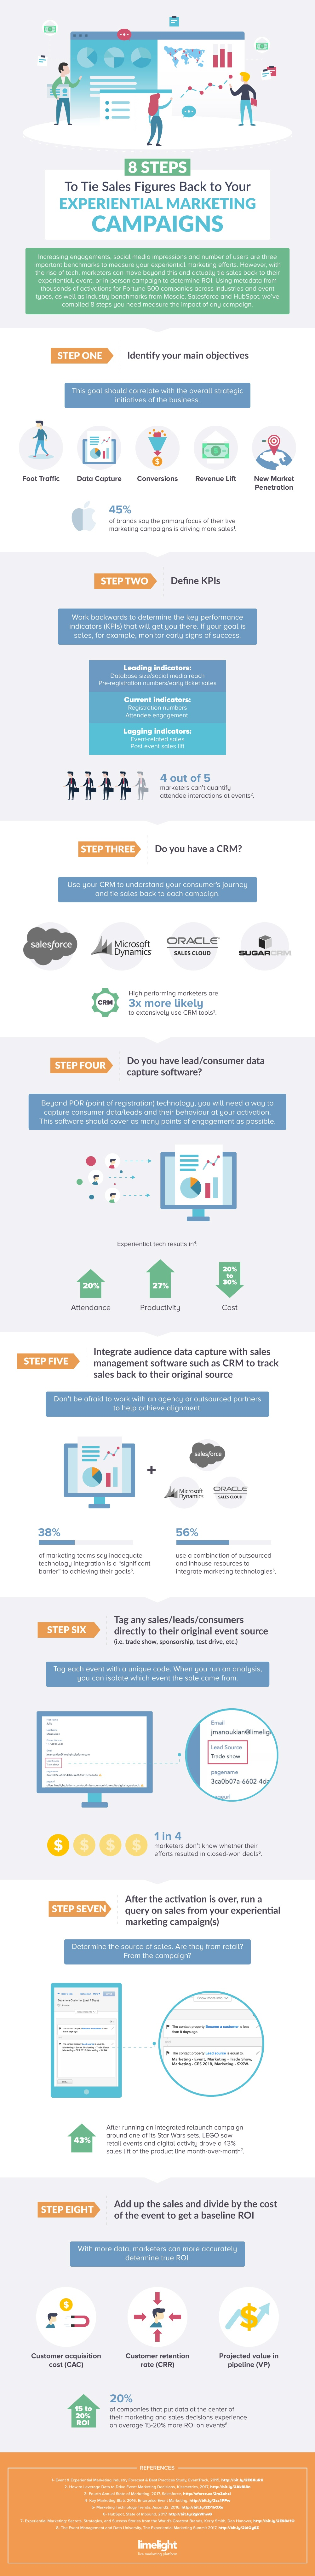 8 Steps to Tie Sales Figures Back To Your Experiential Marketing Campaign [Infographic]